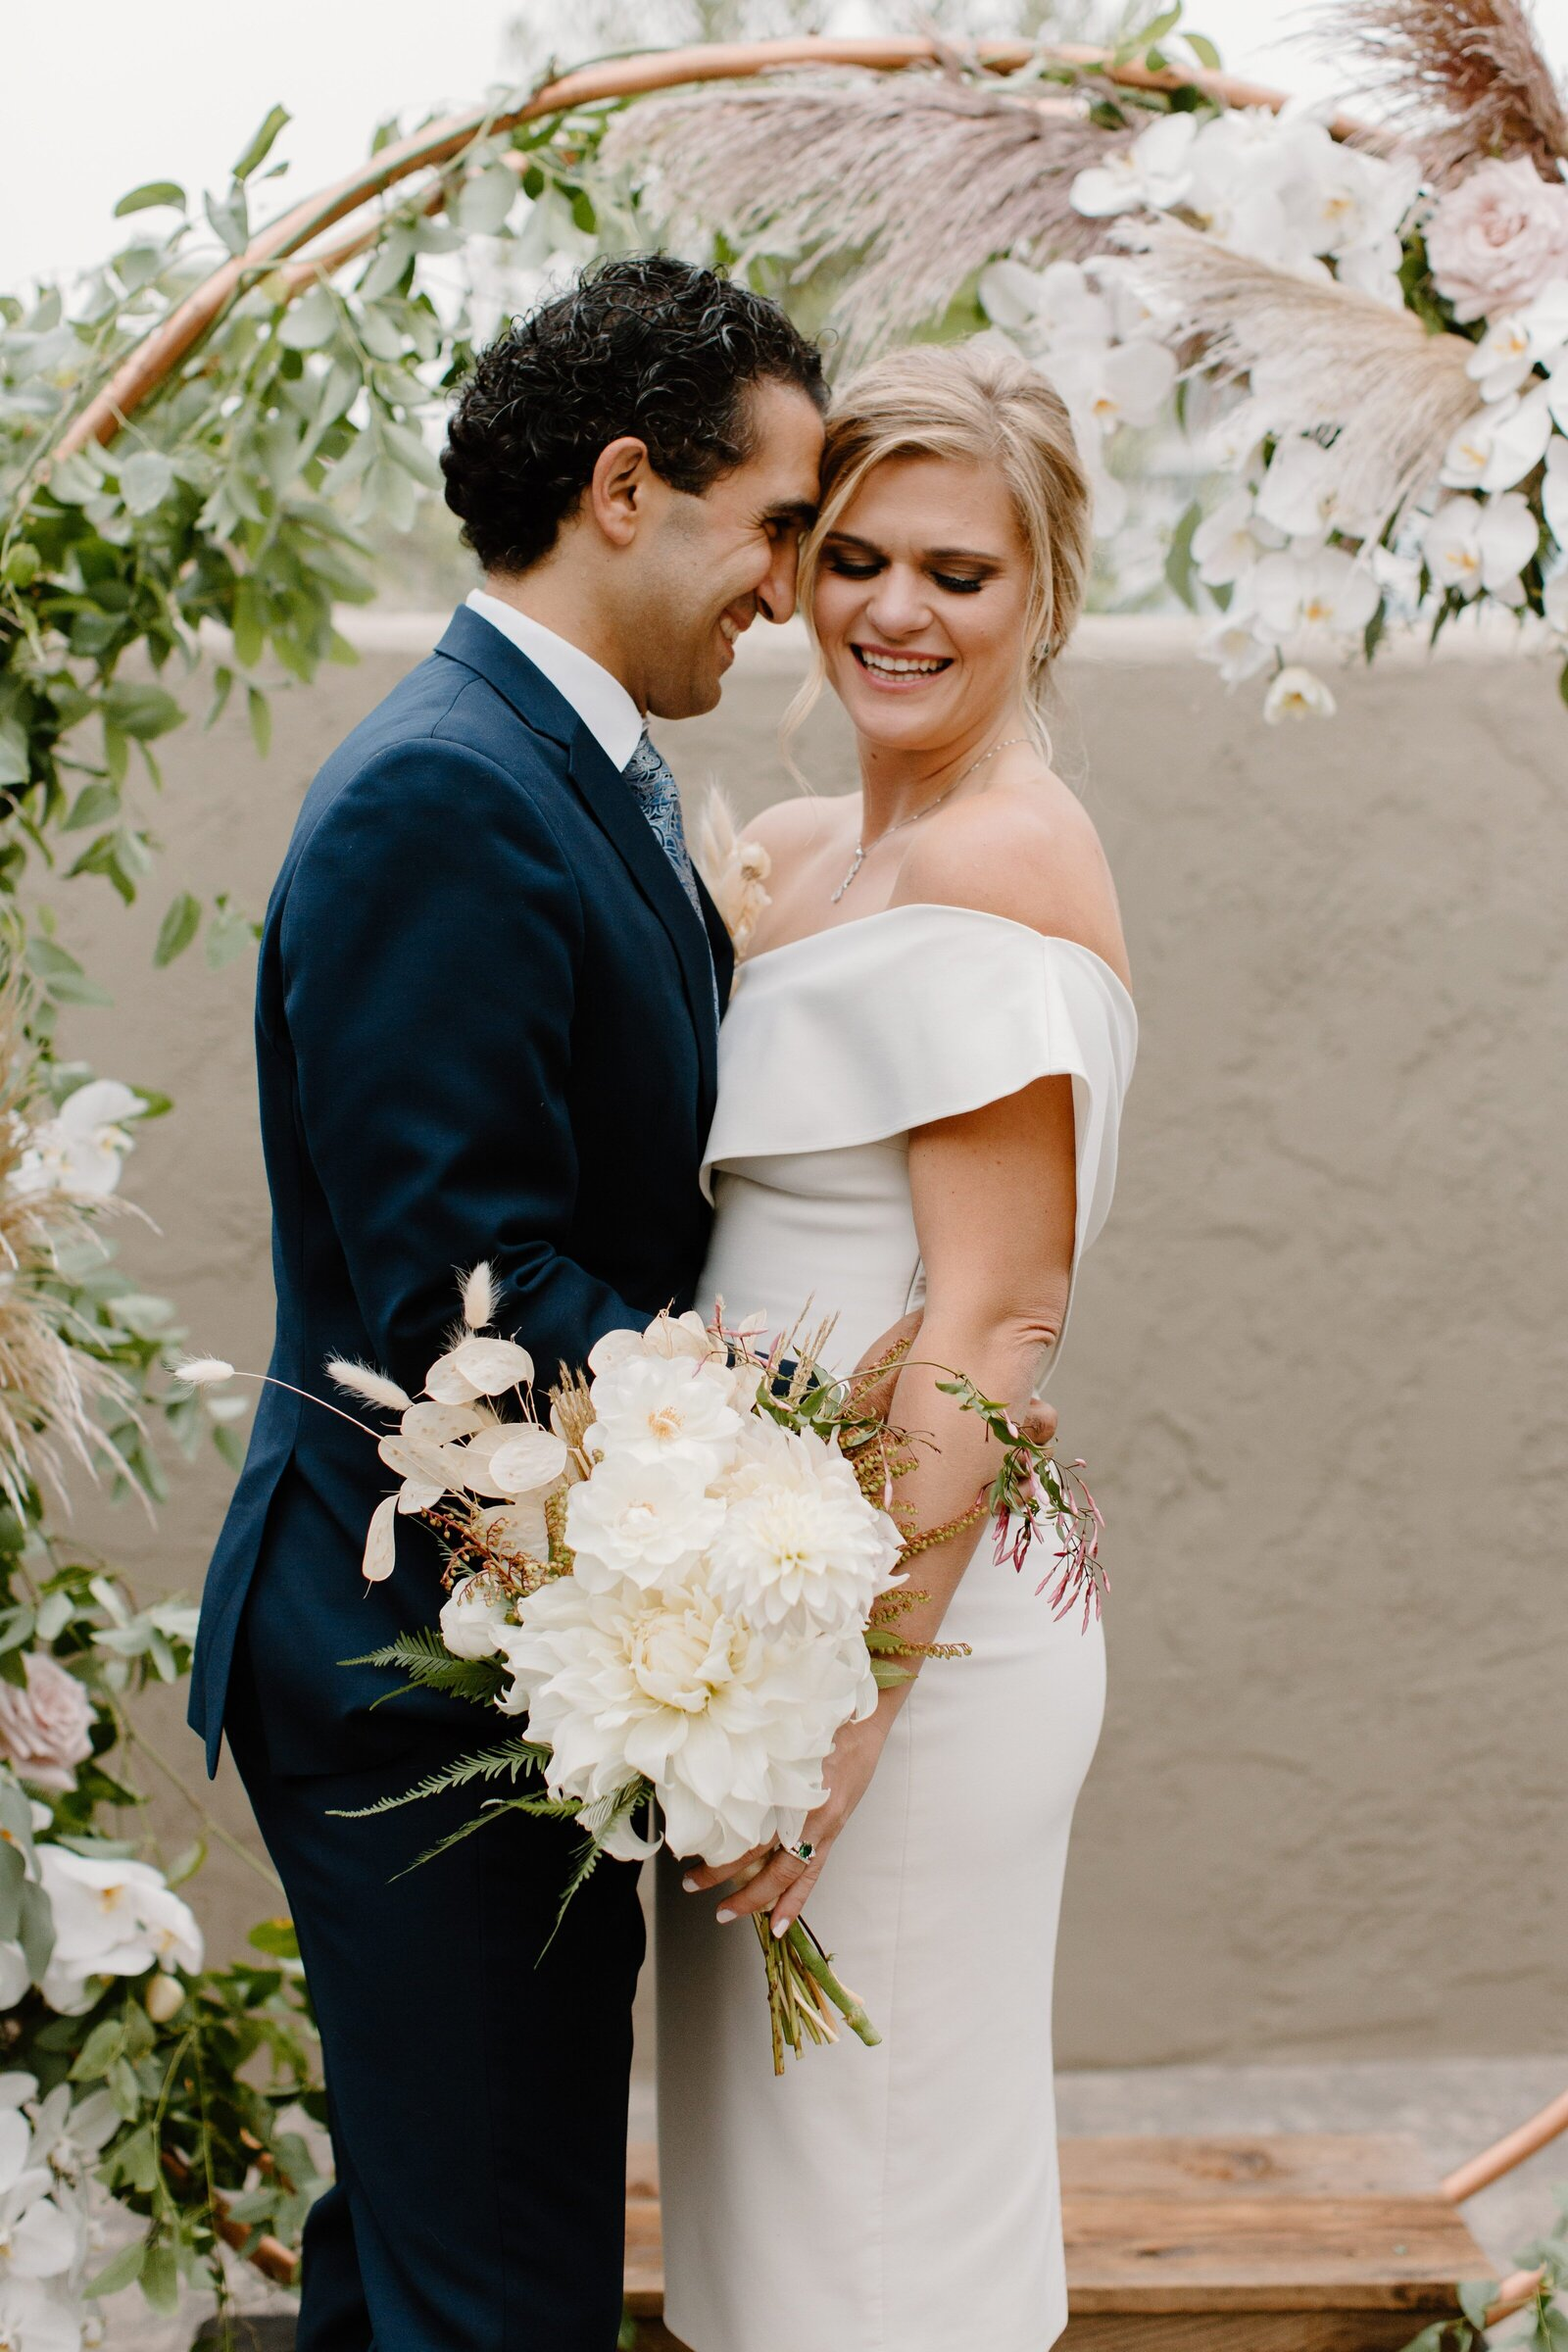 Caitlin-Arya_Intimate-Wedding-Aptos_Hannah-Berglund-Photography-359